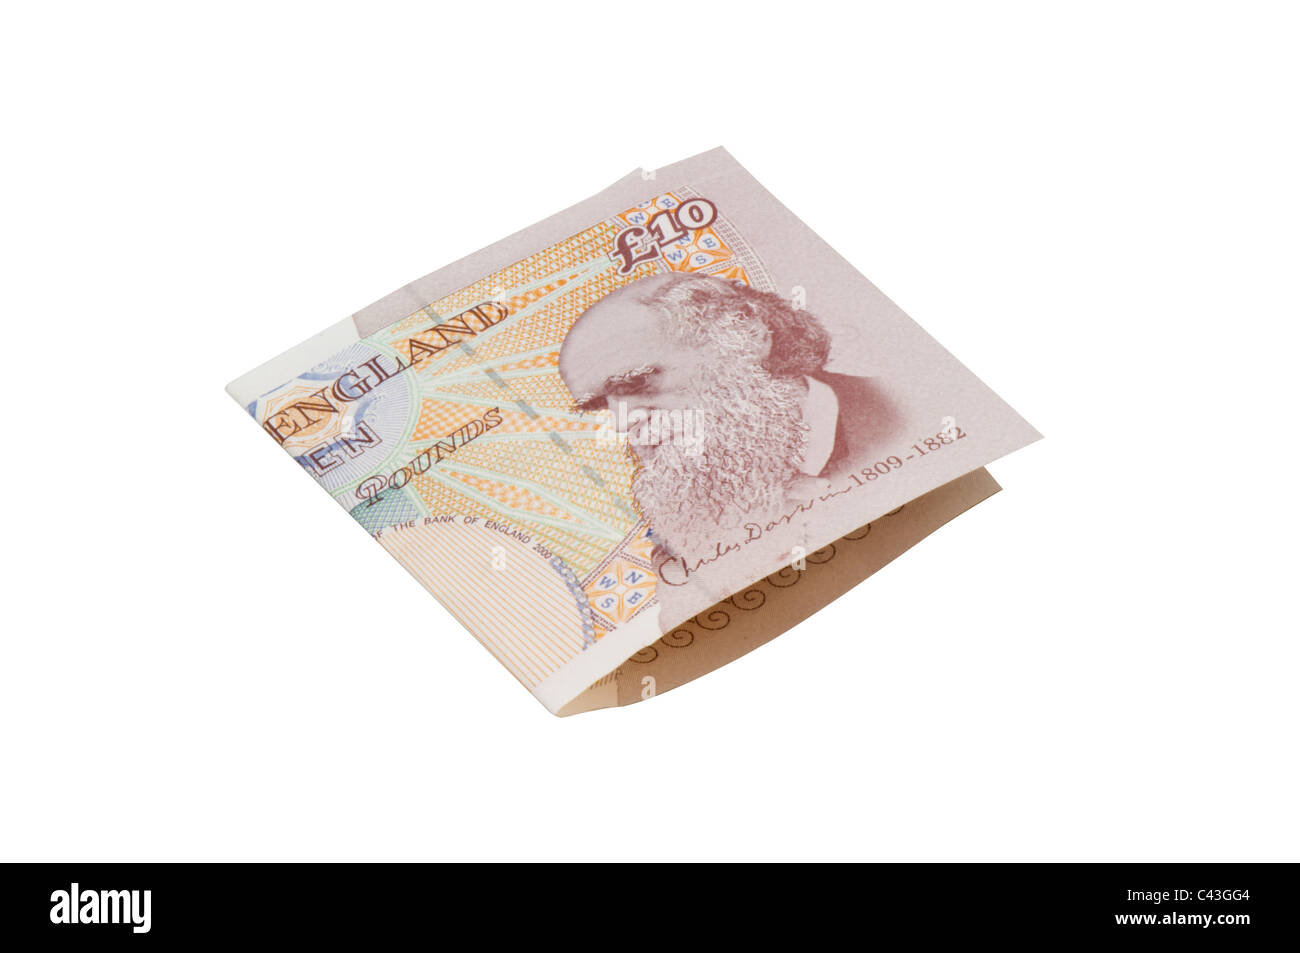 Ten pound English bank note folded. - Stock Image